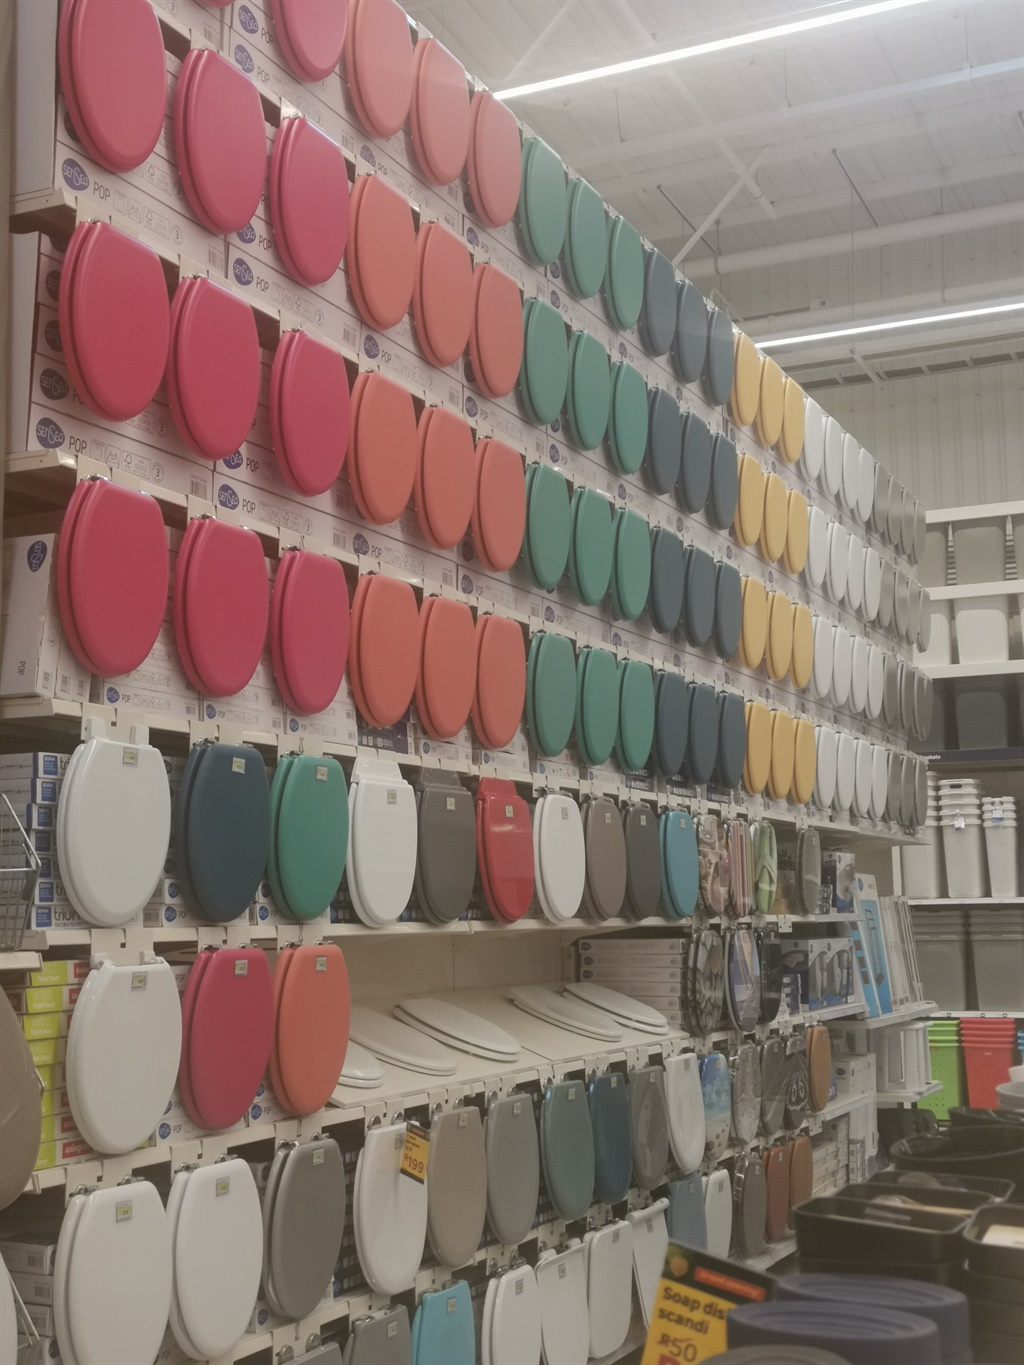 The range of toilet seats available at the new Leroy Merlin store Picture: Dumisane Lubisi